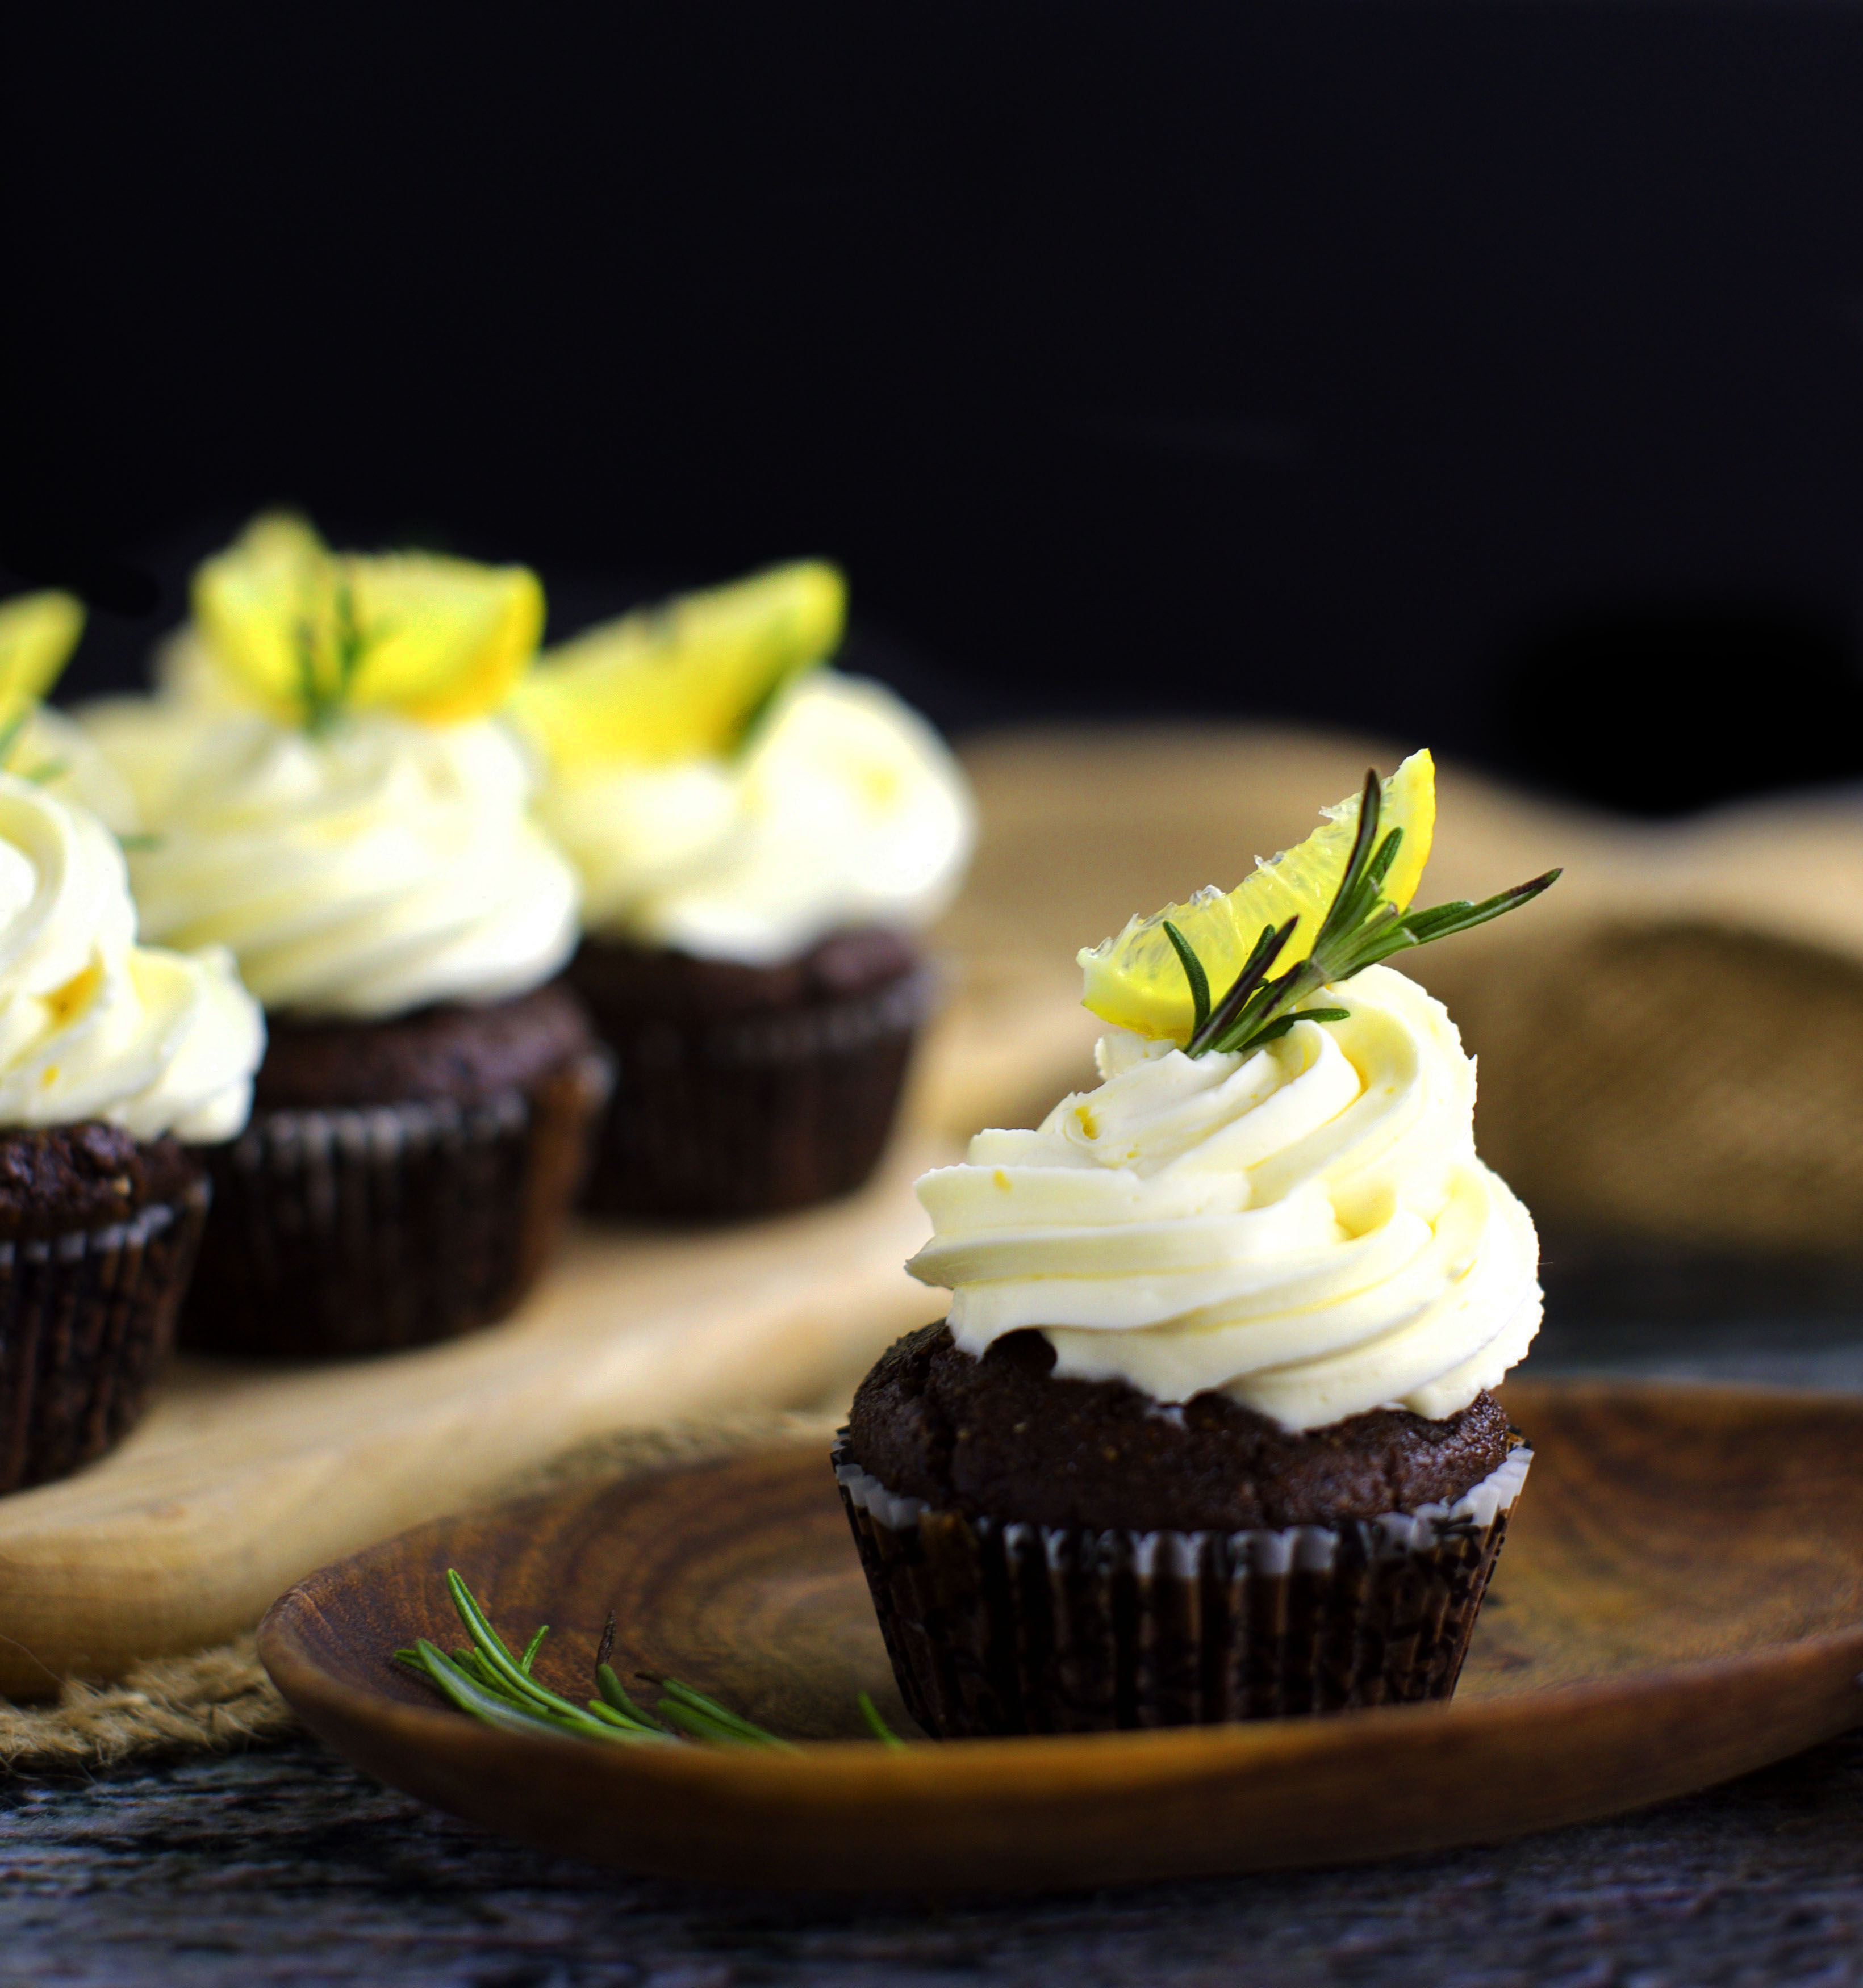 Photo of Low-Carb Chocolate Rosemary Cupcakes with Lemon Frosting on a plate